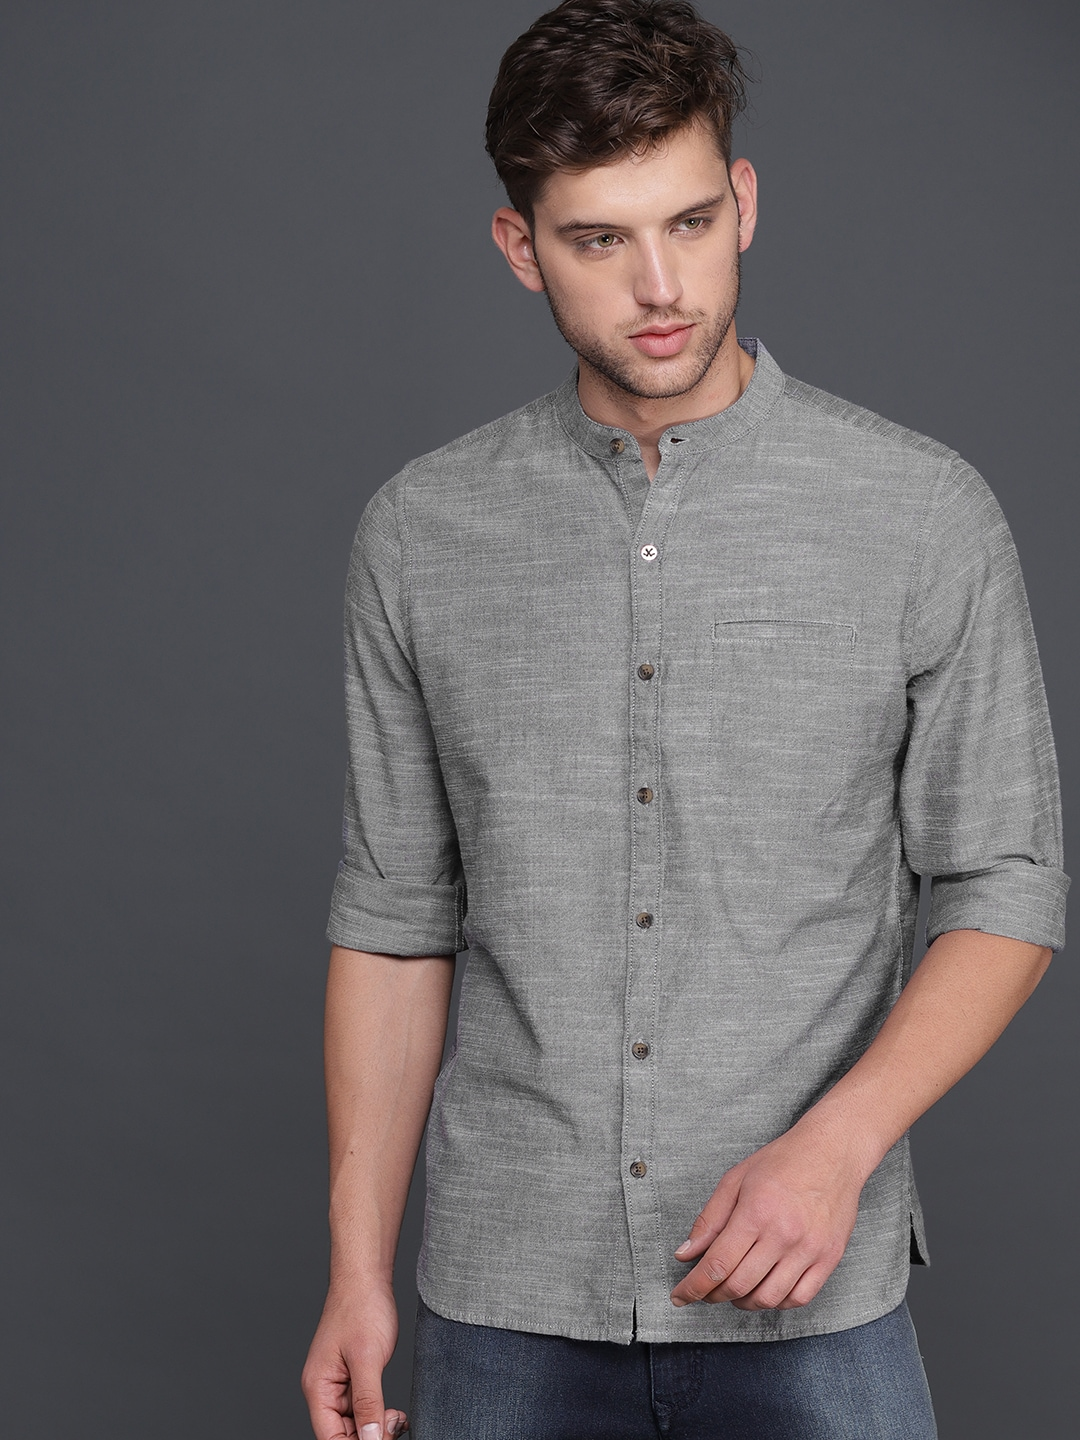 de9db31394d Casual Shirts for Men - Buy Men Casual Shirt Online in India